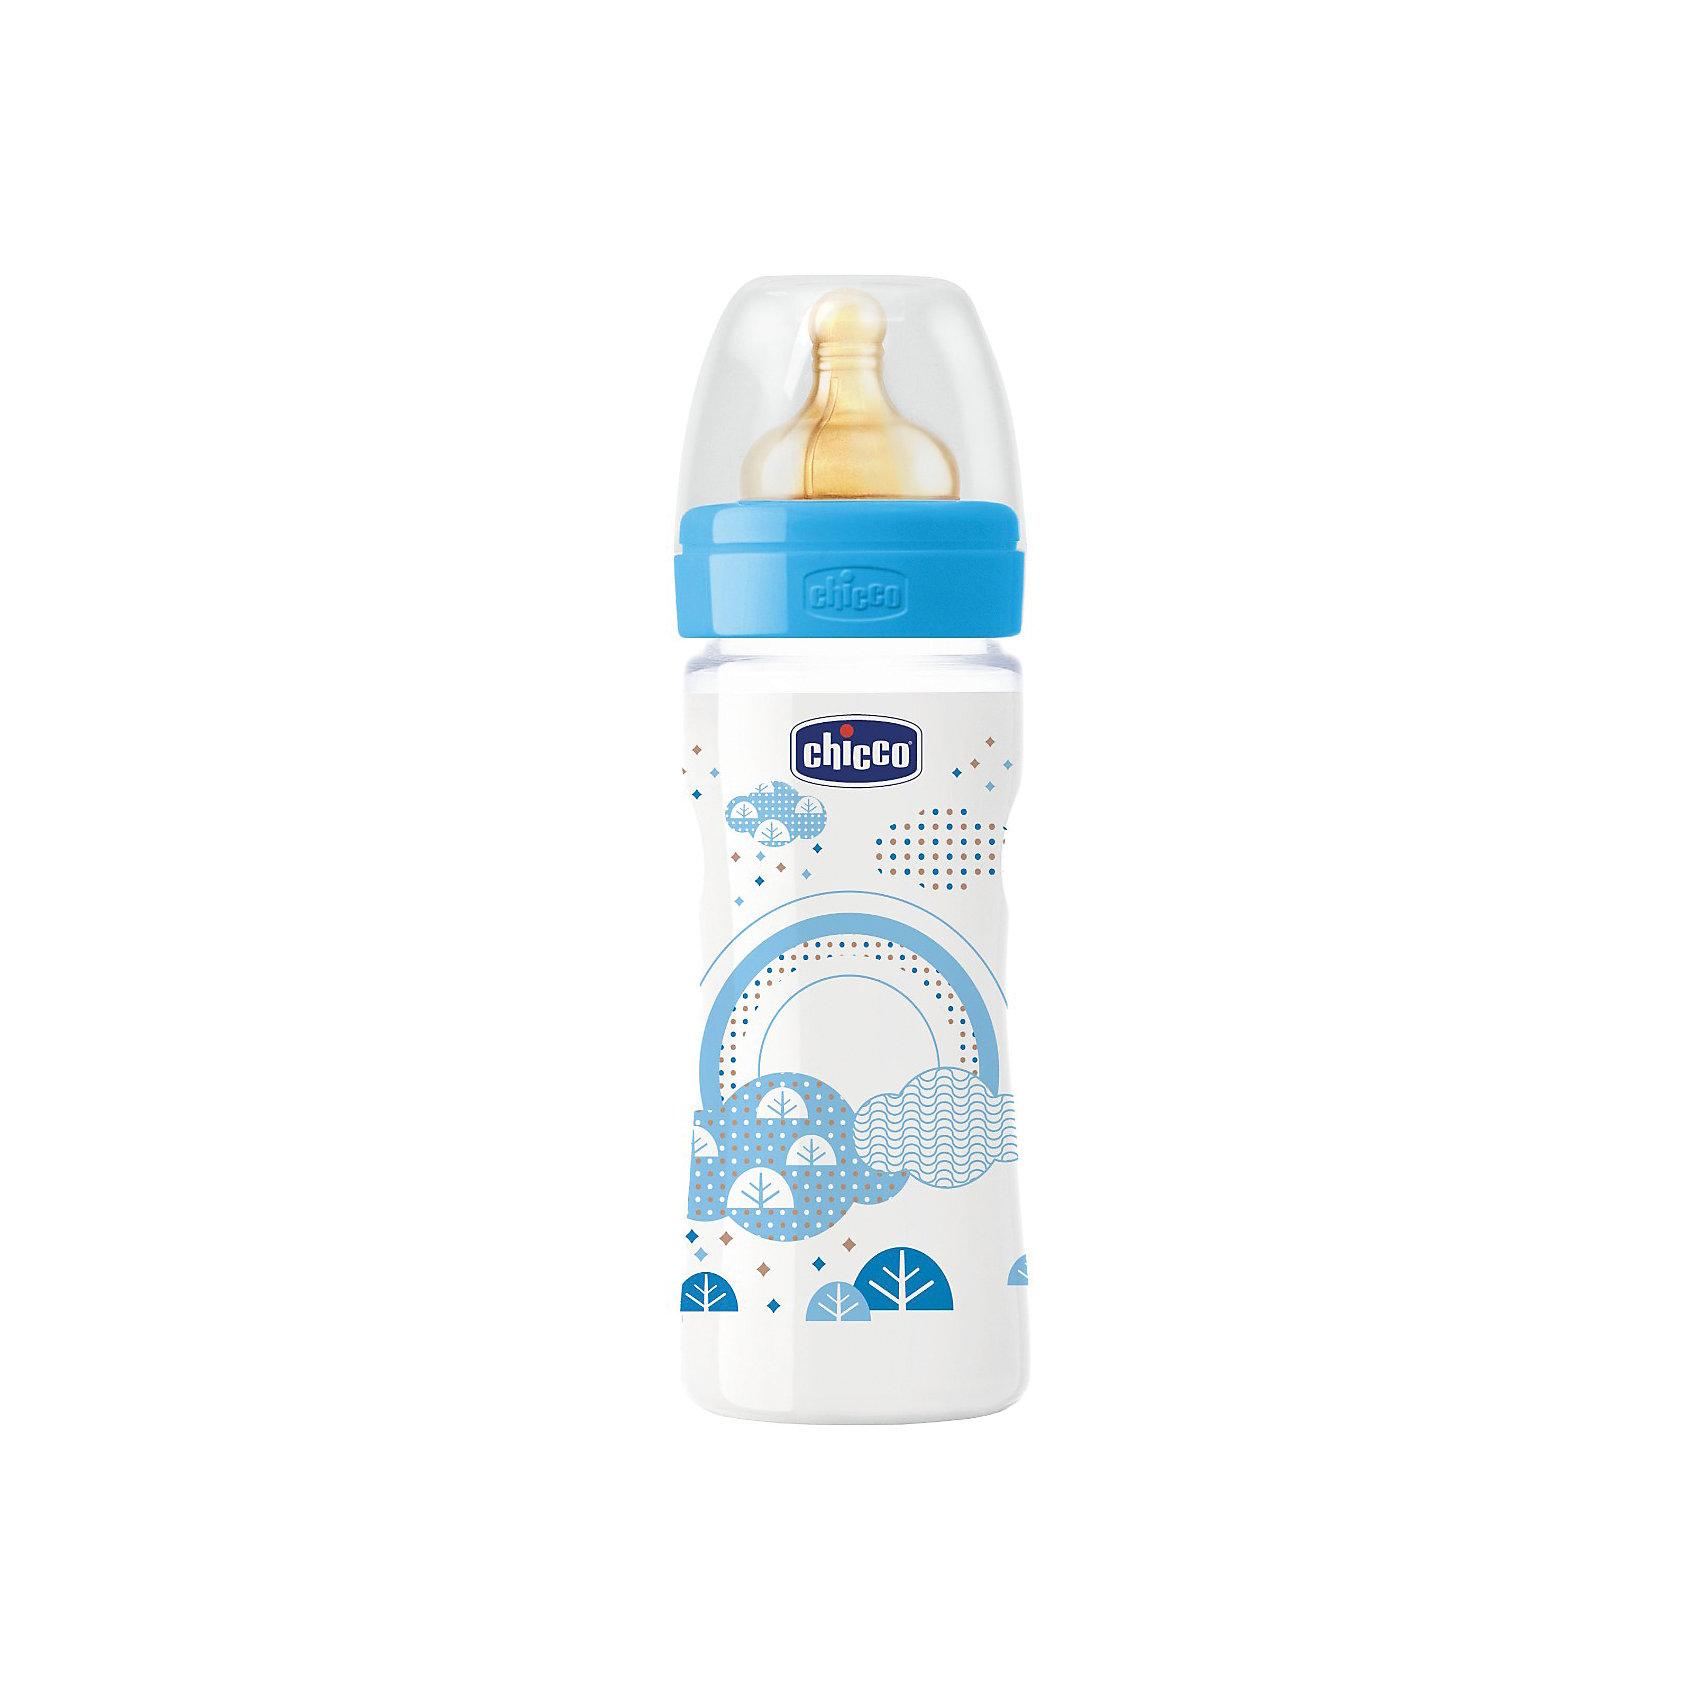 цена на CHICCO Бутылочка Well-Being Boy 2мес.+, лат.соска, РР,250мл., CHICCO